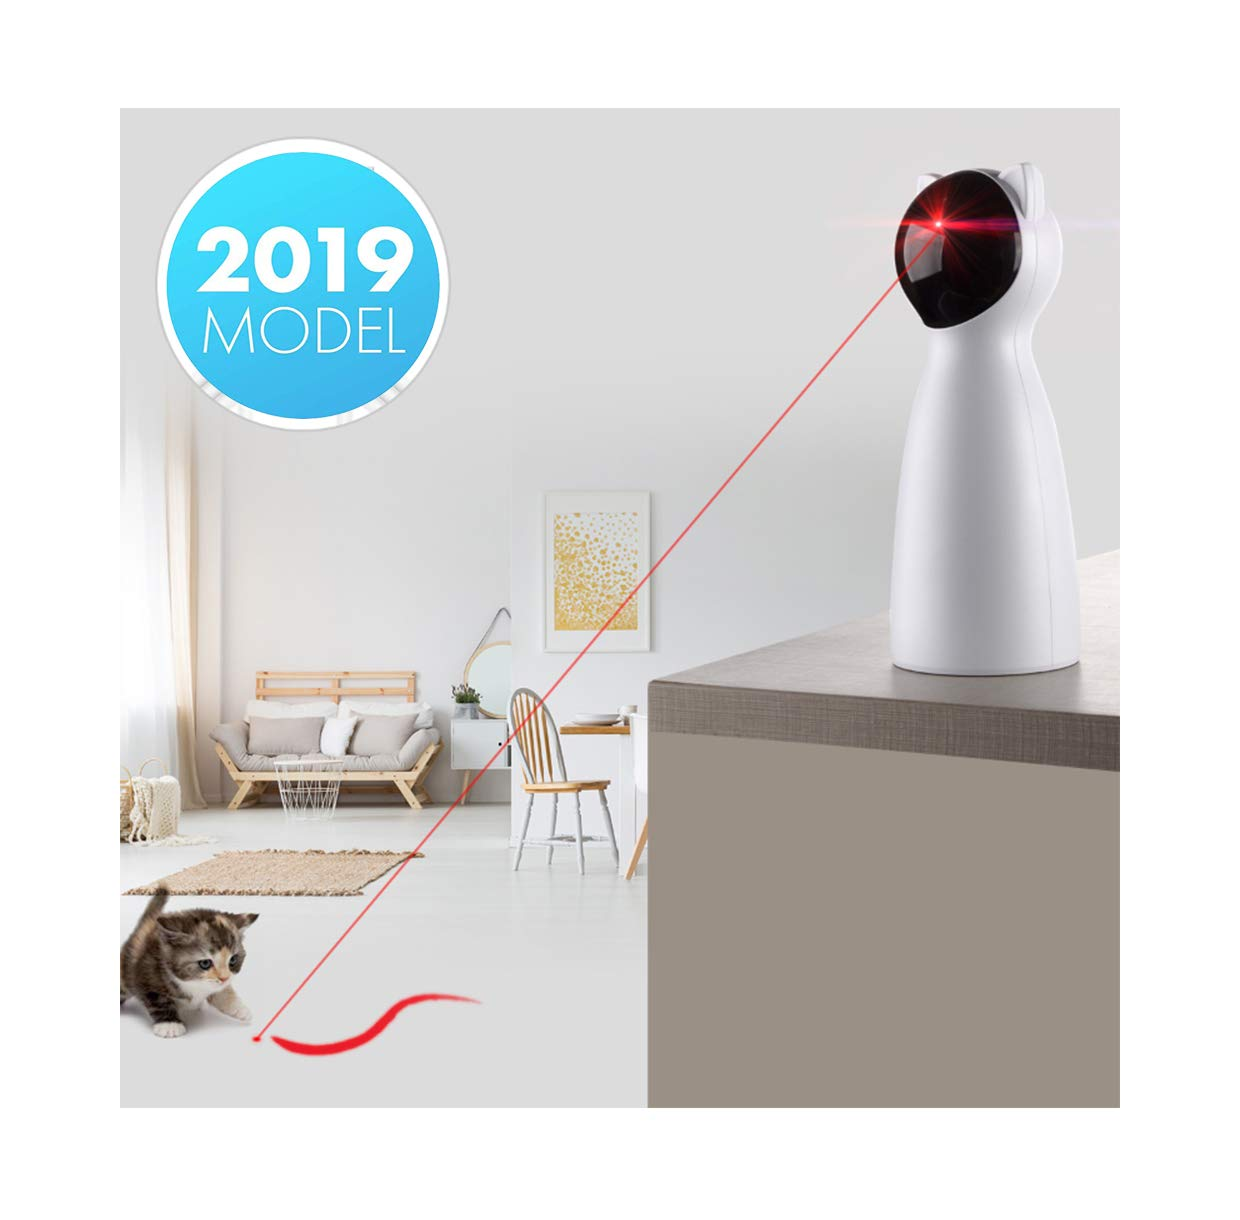 Yvelife Cat Laser Toy Automatic,Interactive Toy for Kitten/Dogs - USB Charging,Placing Hign,5 Random Pattern,Automatic On/Off and Silent (P01), White, Medium by Yvelife